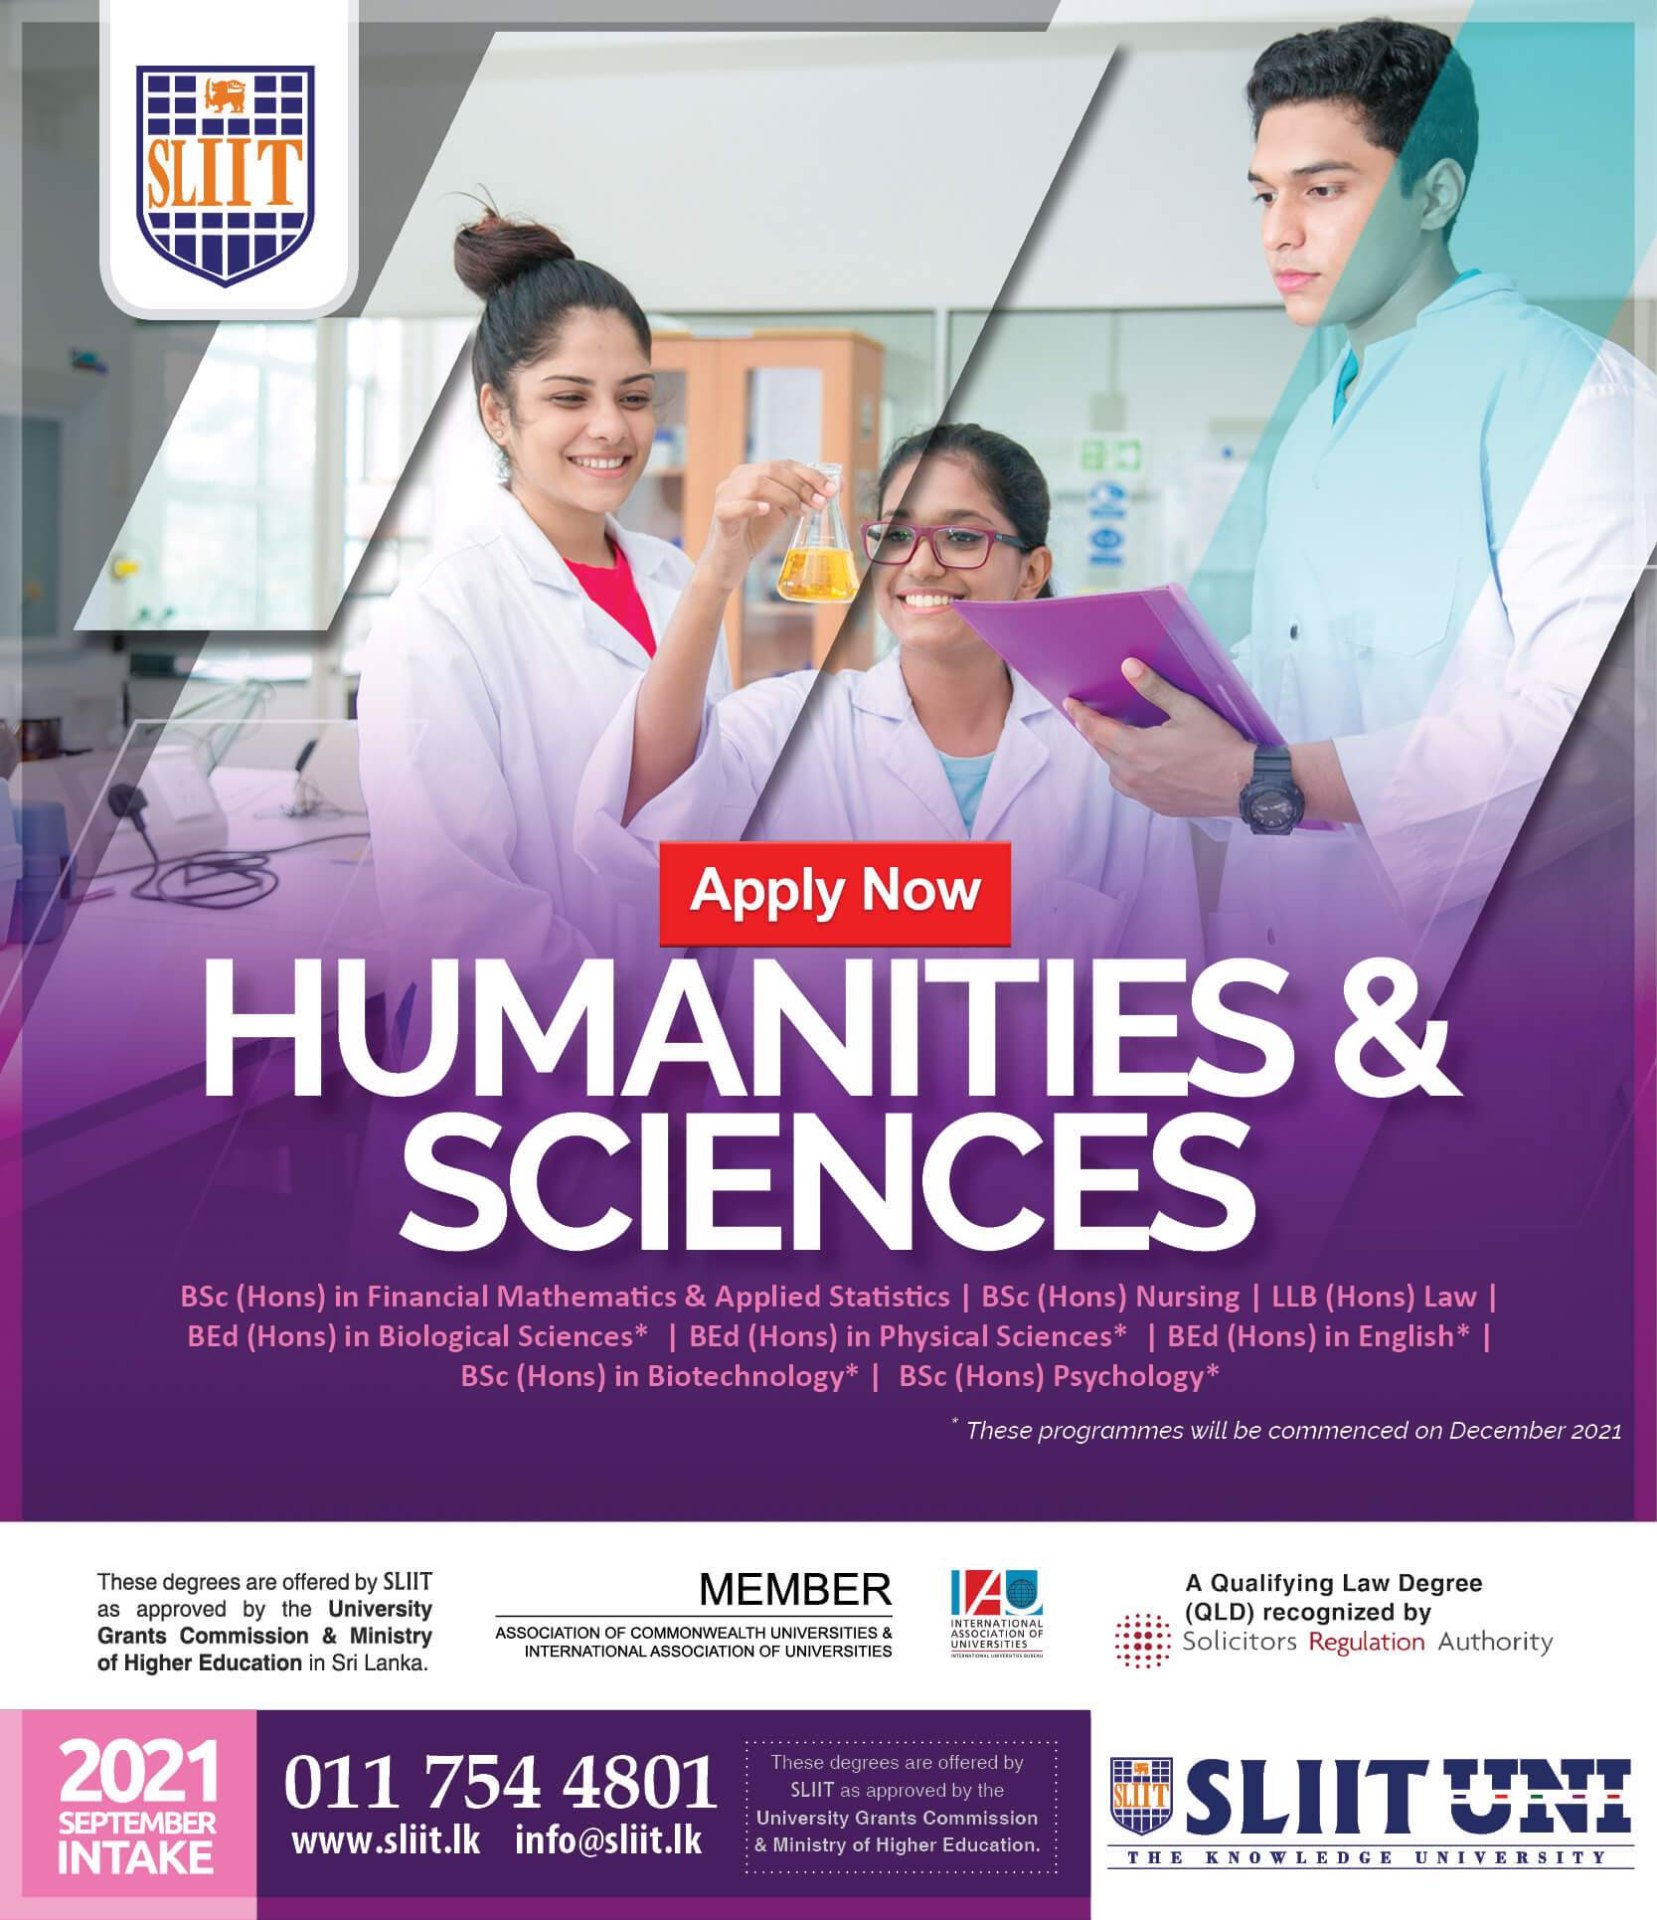 Bachelor's Honours Degrees in Humanities & Sciences at SLIIT